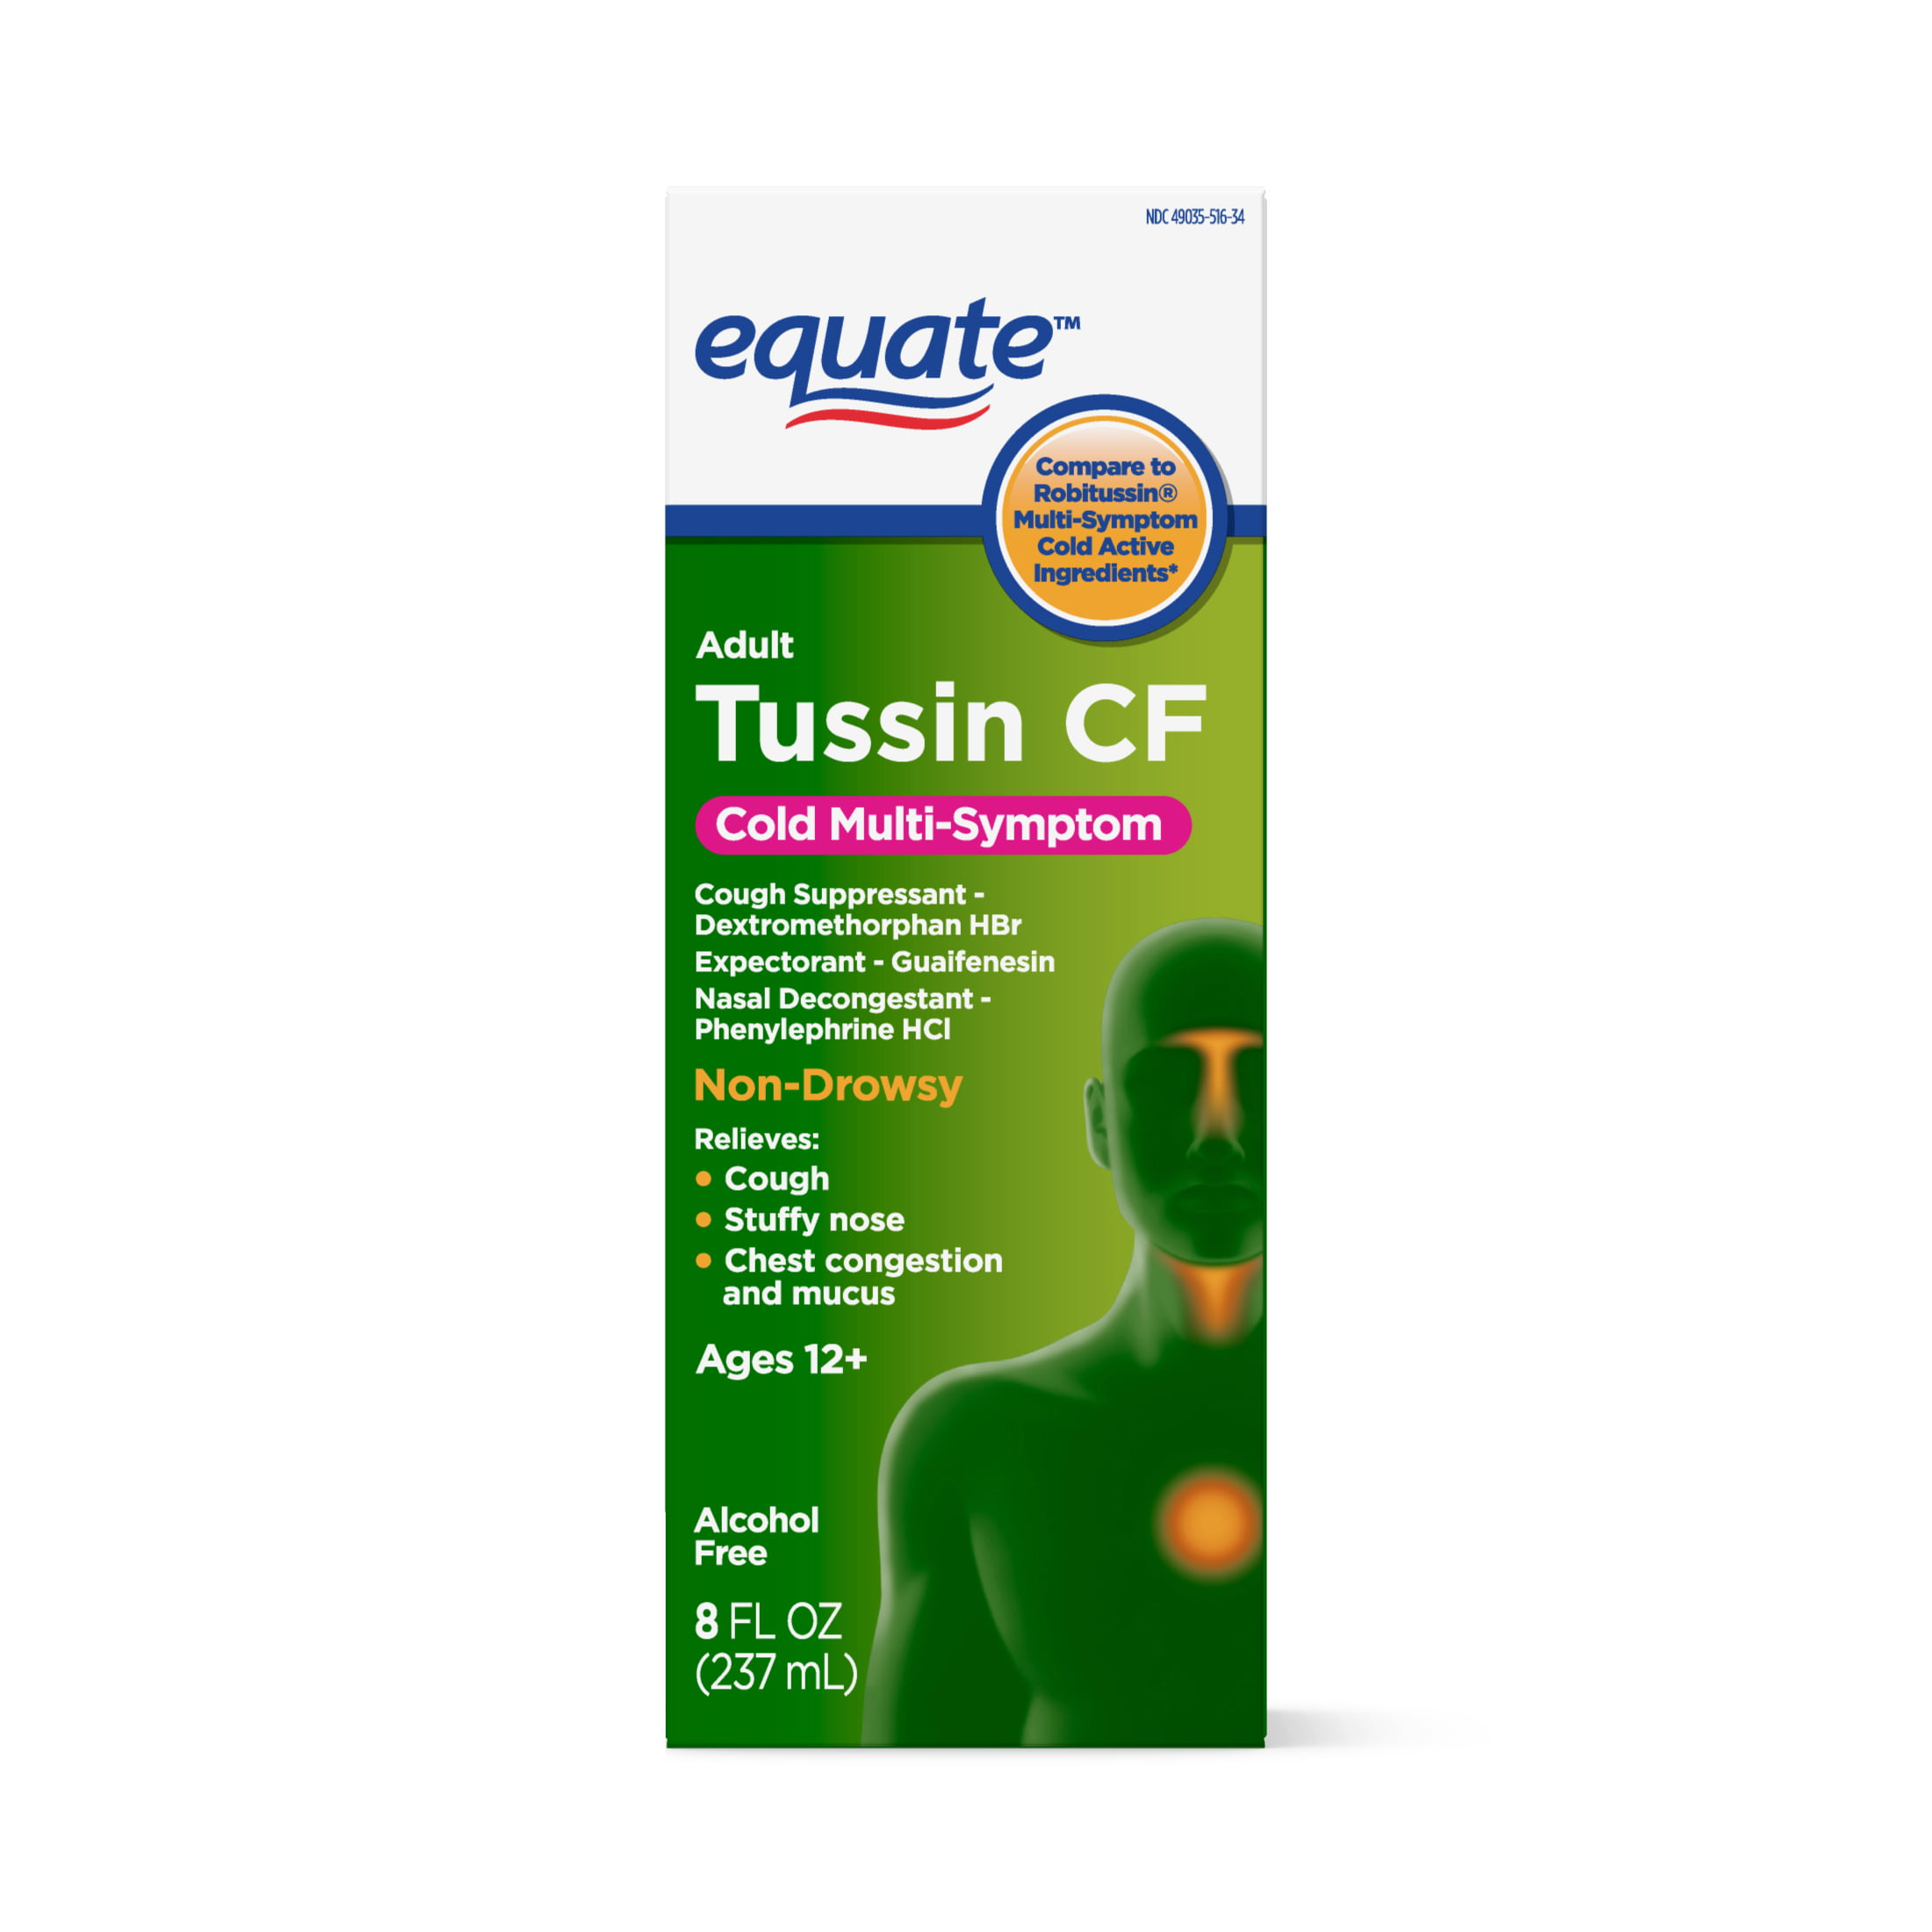 Equate Tussin Cough & Cold, Wild Cherry Flavor; Multi-Symptom Cold Medicine Relieves Cough, Nasal Congestion and Chest Congestion, 8 Fluid Ounces